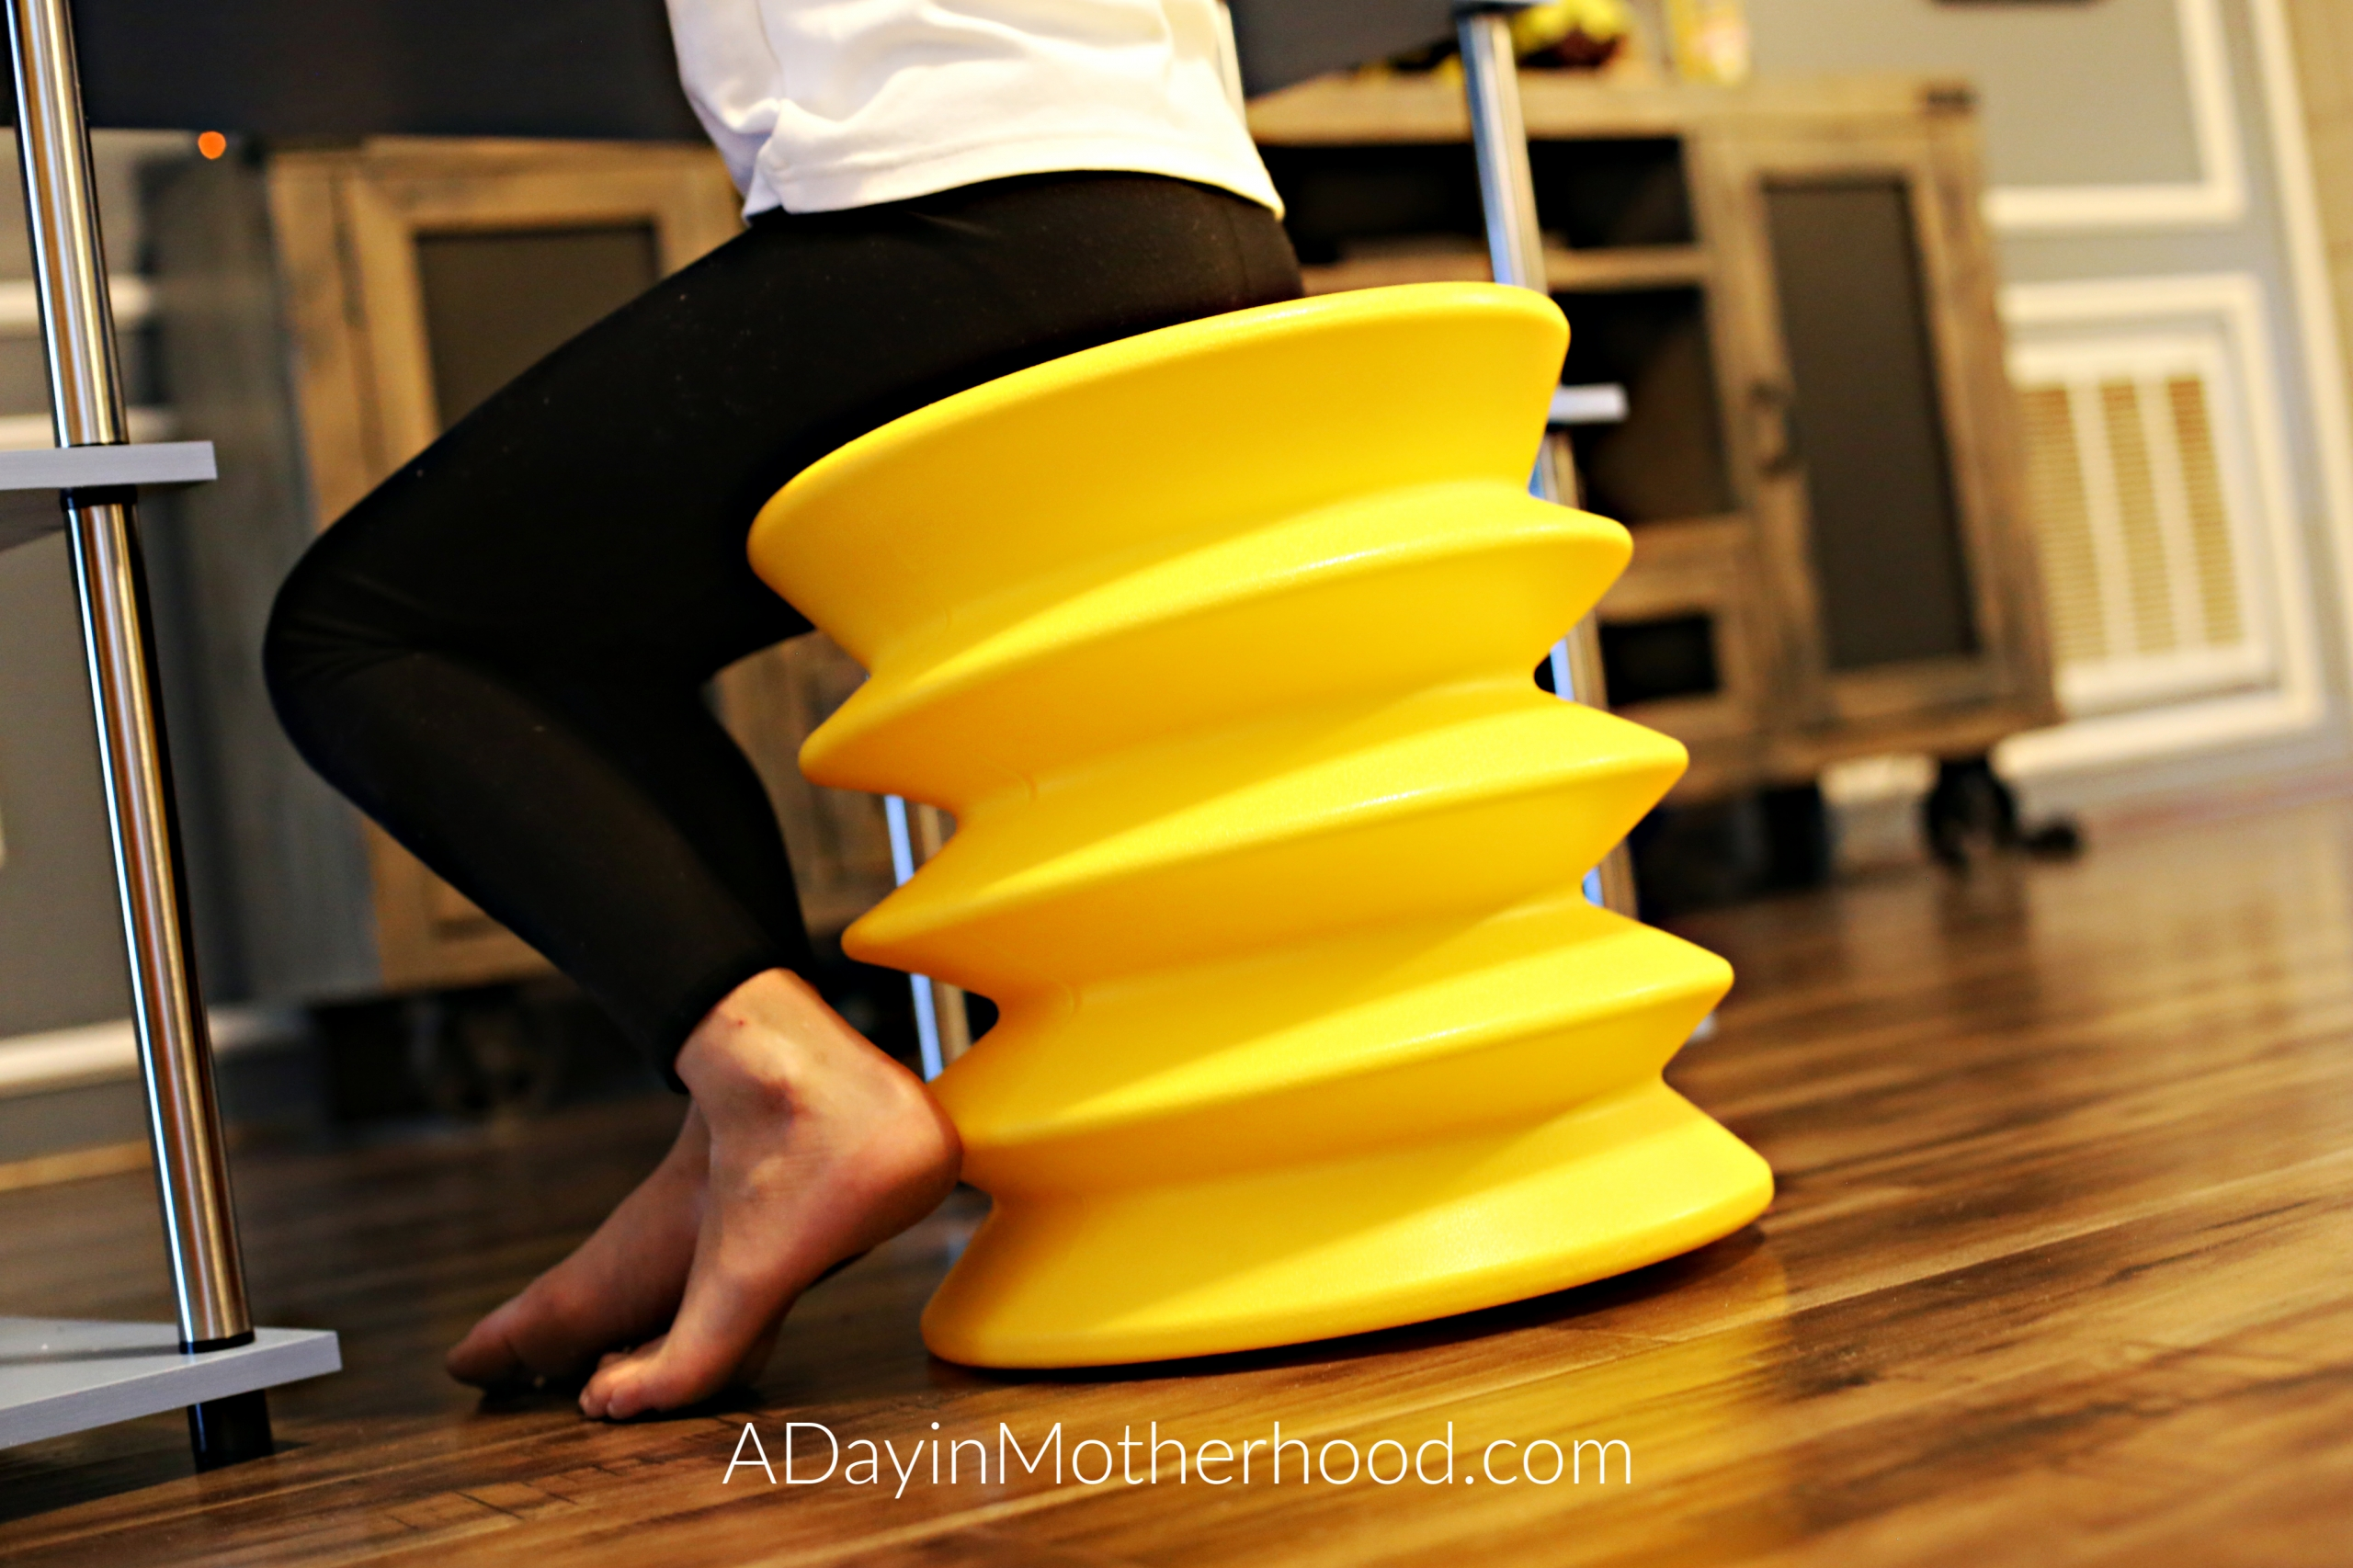 ErgoErgo and Tossits to help me get moving in the New Year-Close up of yellow stool on adayinmotherhood.com